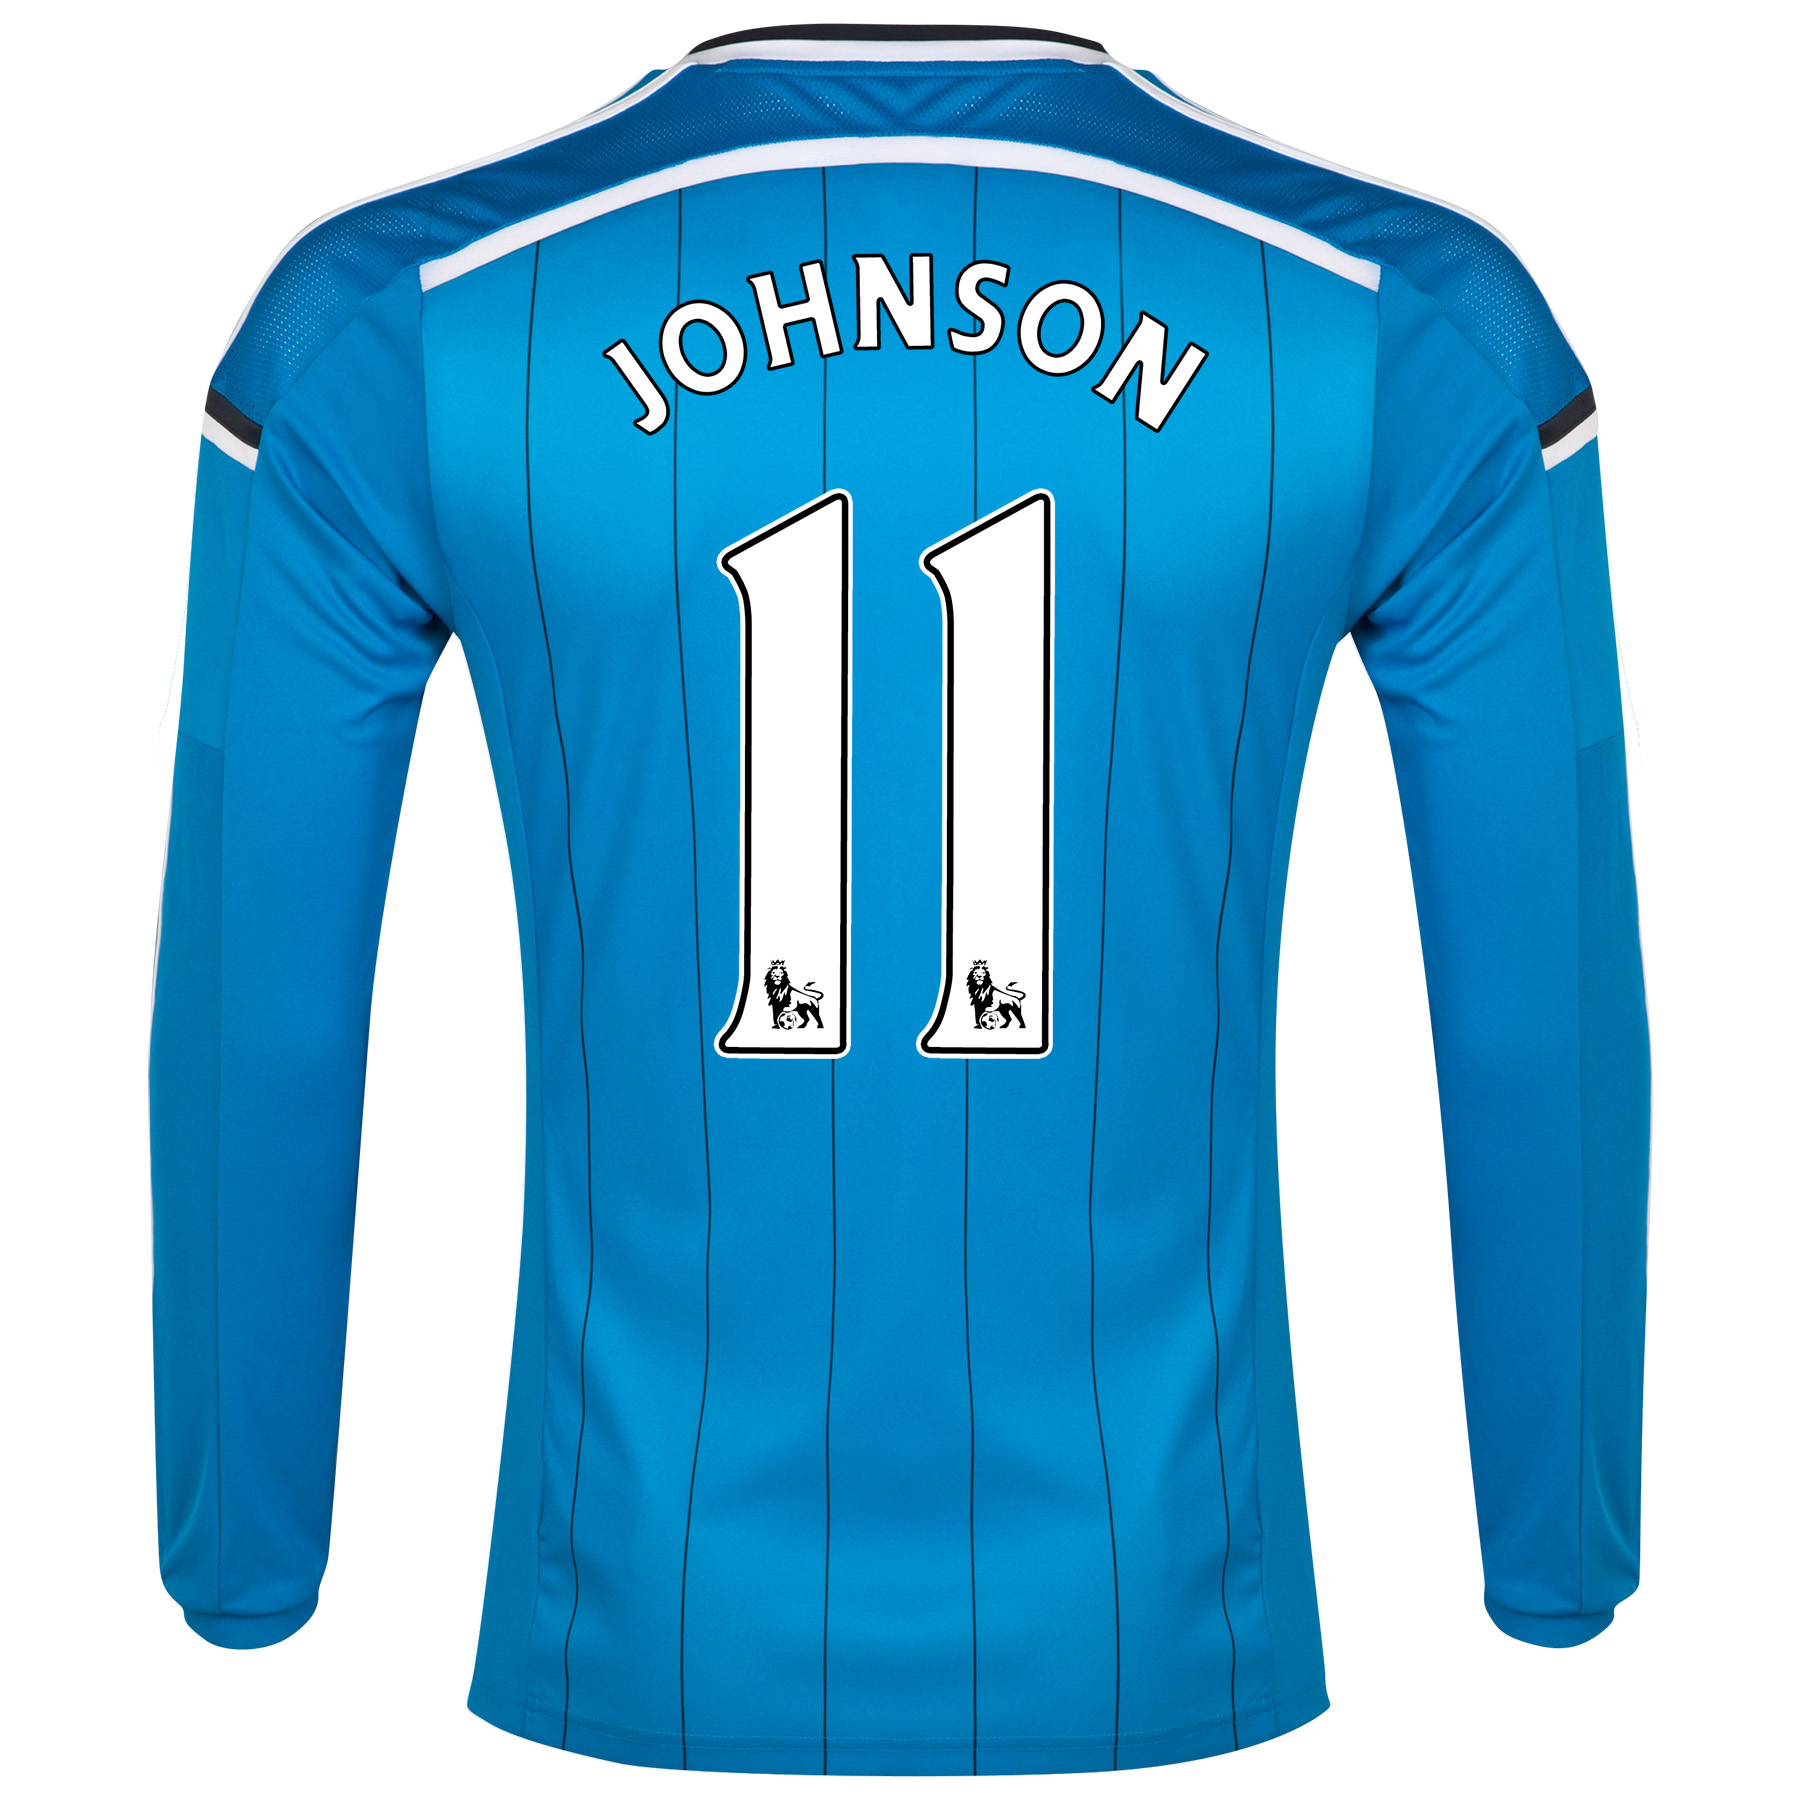 Sunderland Away Shirt 2014/15 - Long Sleeved Lt Blue with Johnson 11 printing